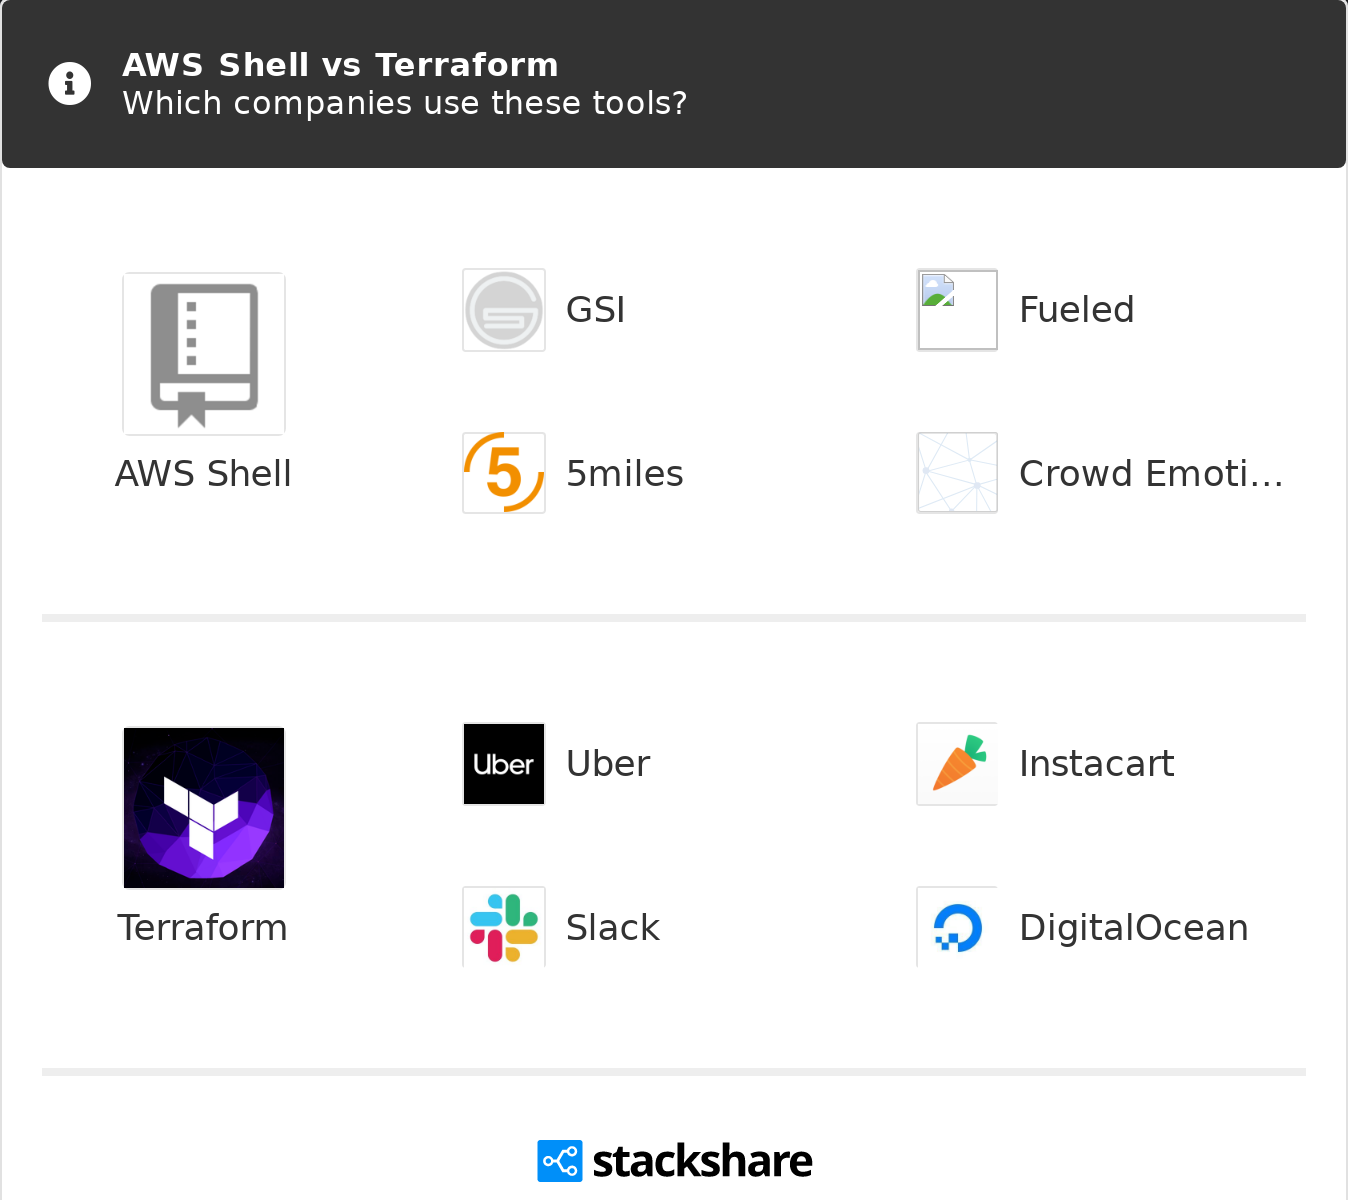 AWS Shell vs Terraform   What are the differences?